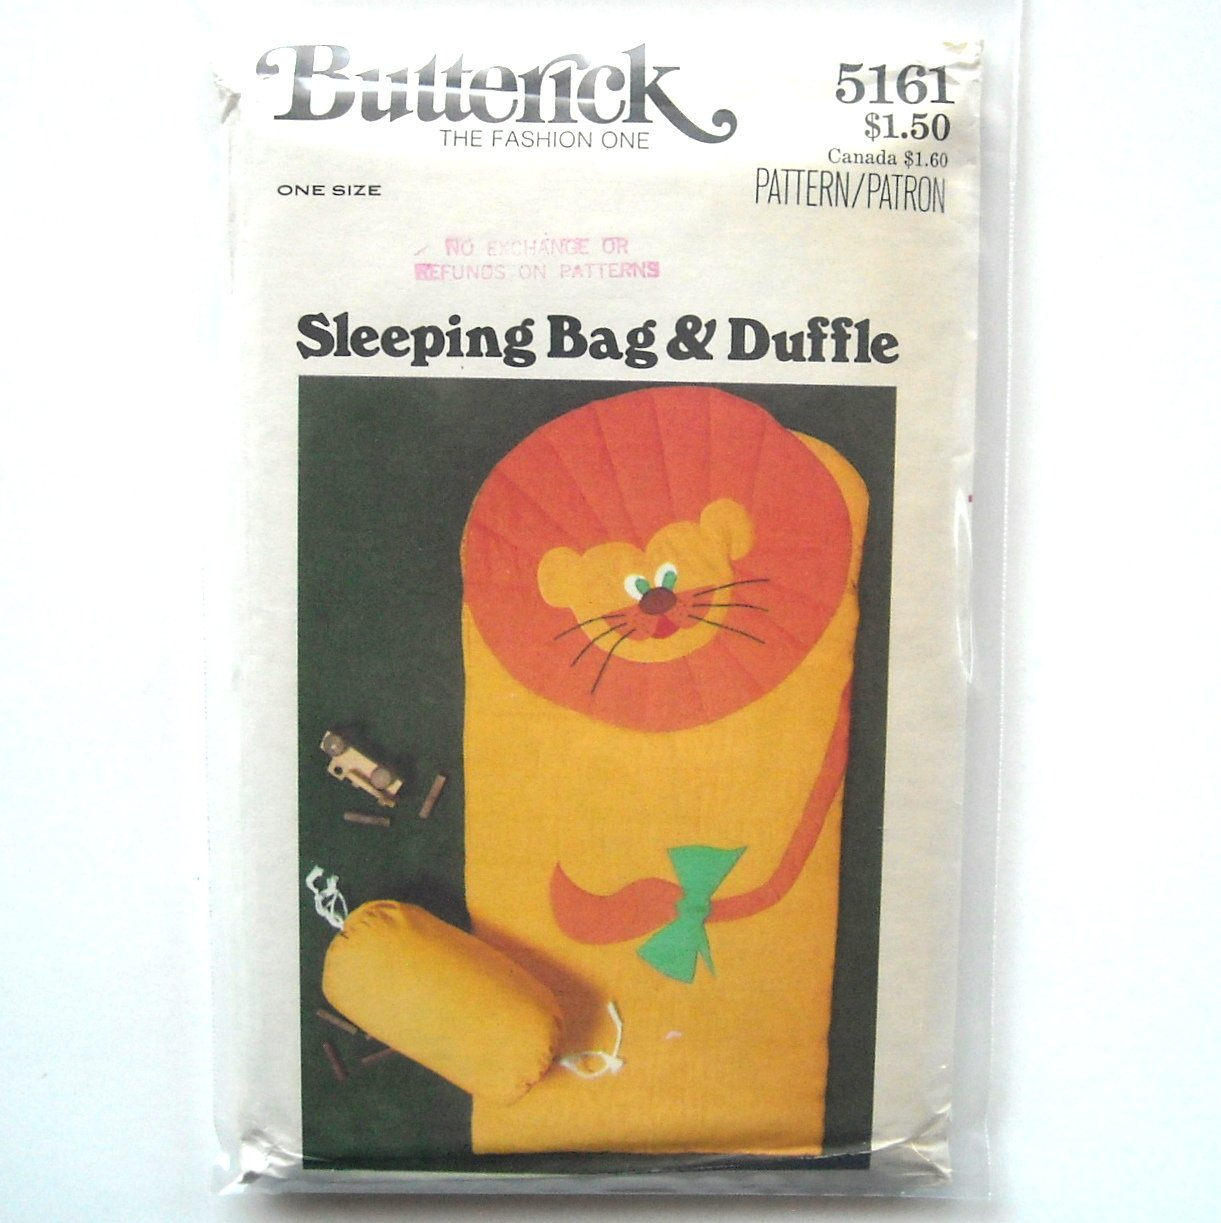 Sleeping Bag & Duffle Vintage Butterick Sewing Pattern 5161